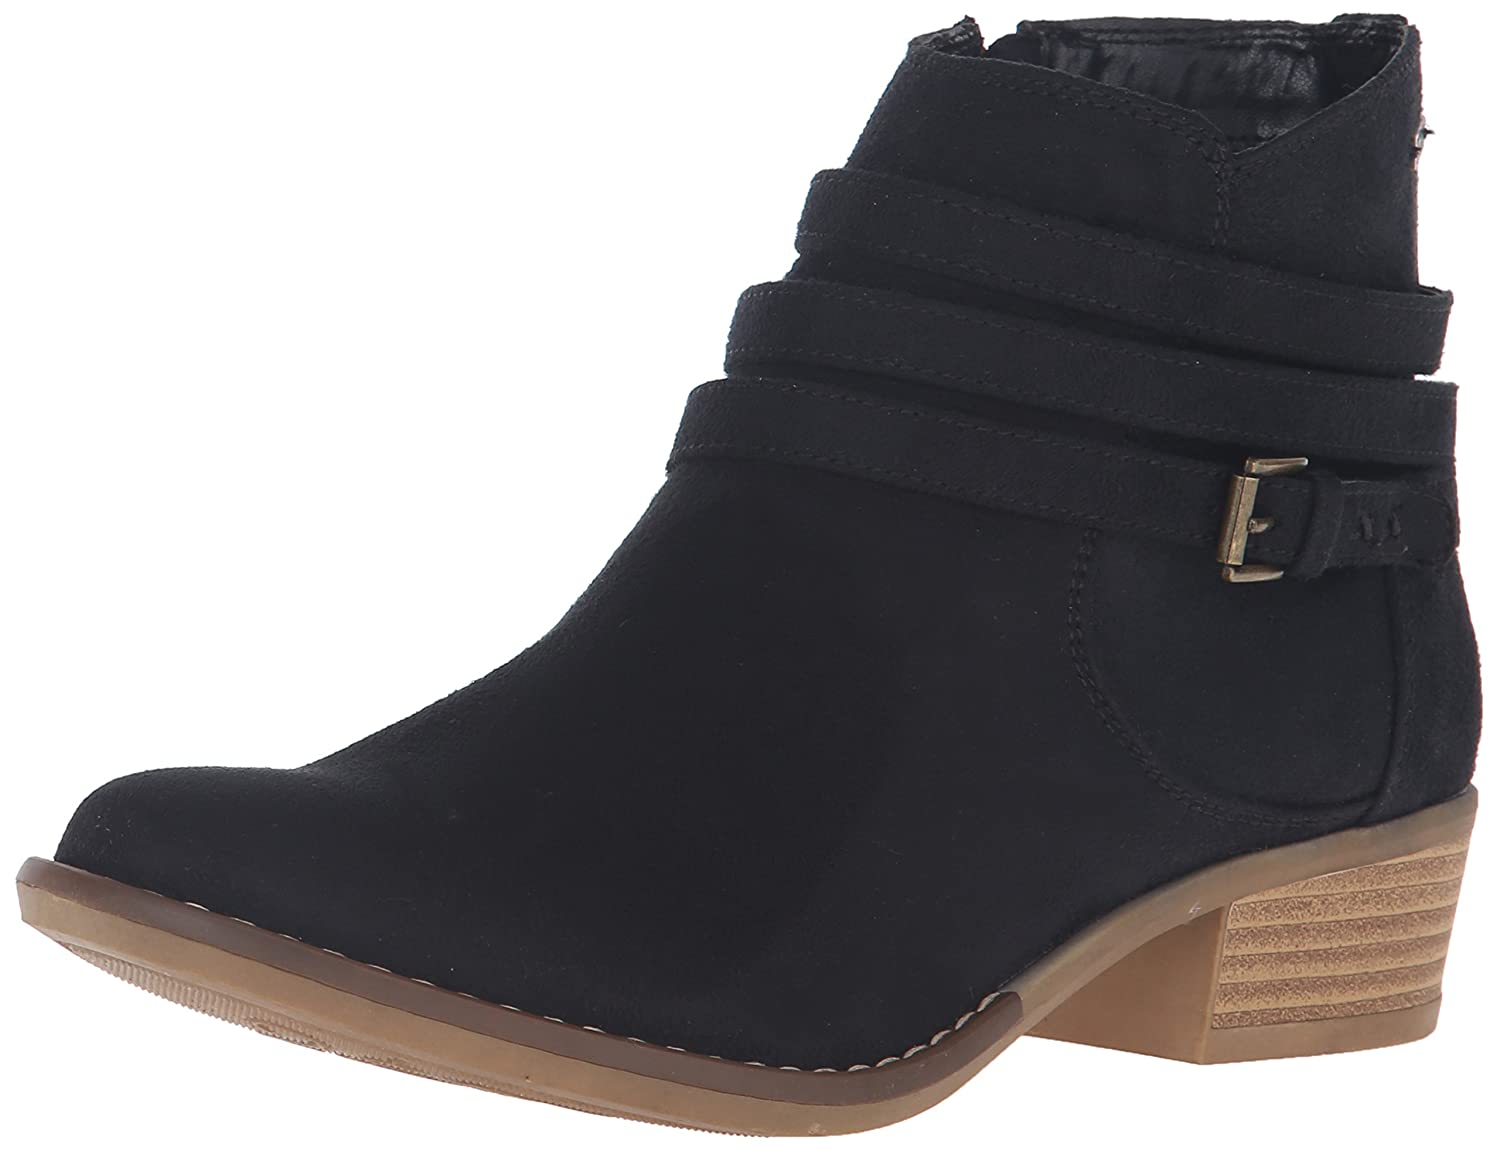 Roxy Womens Chandler Boot Ankle Bootie